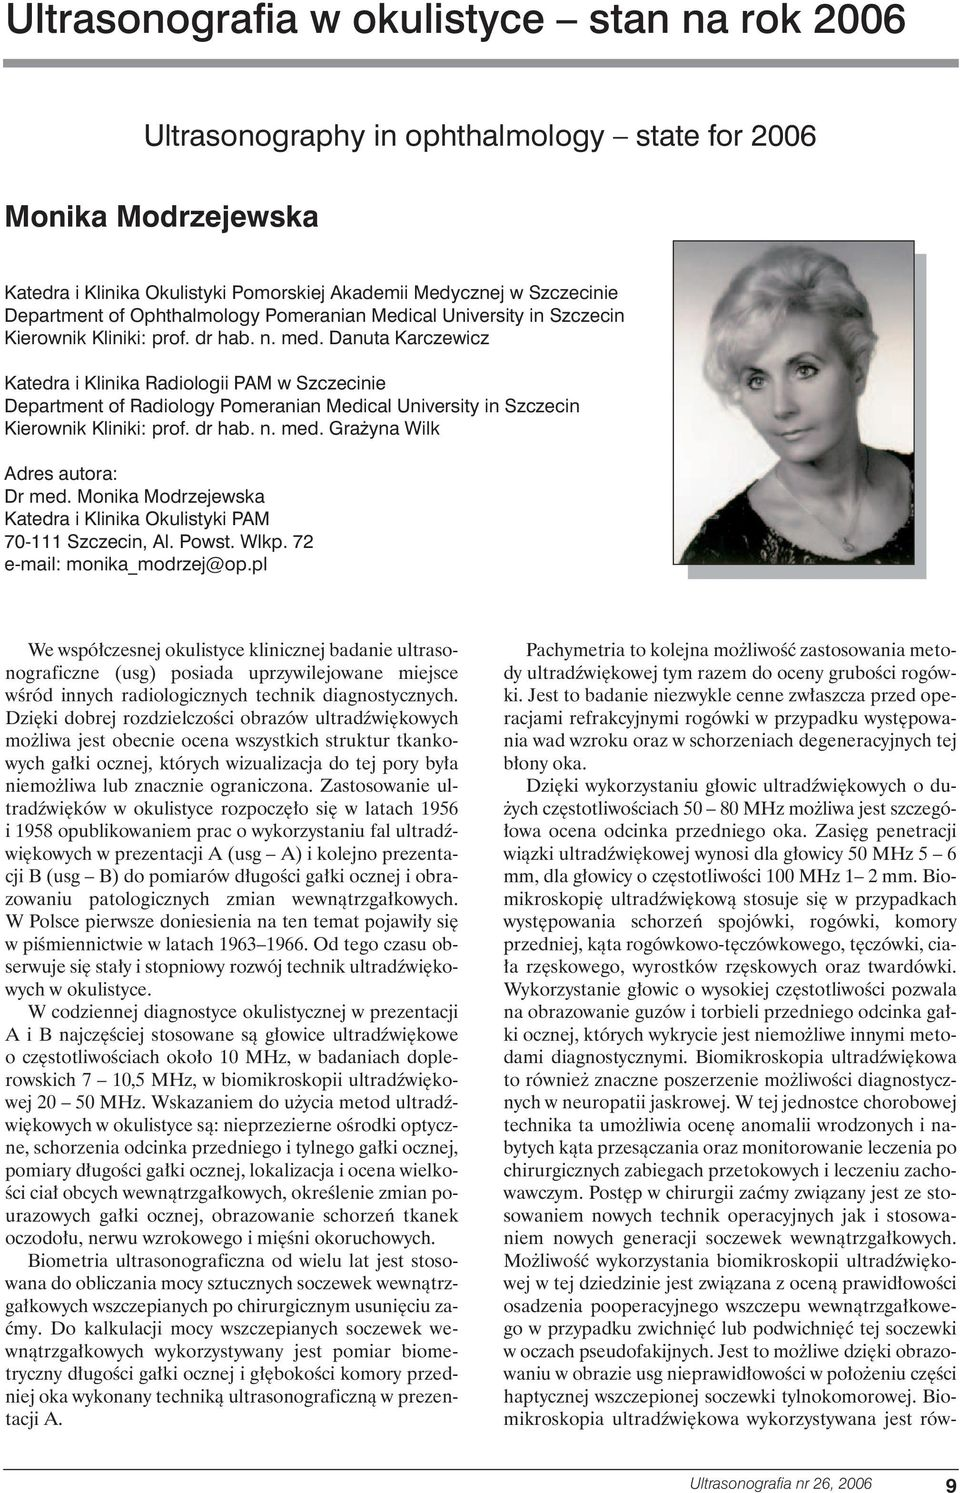 Danuta Karczewicz Katedra i Klinika Radiologii PAM w Szczecinie Department of Radiology Pomeranian Medical University in Szczecin Kierownik Kliniki: prof. dr hab. n. med.